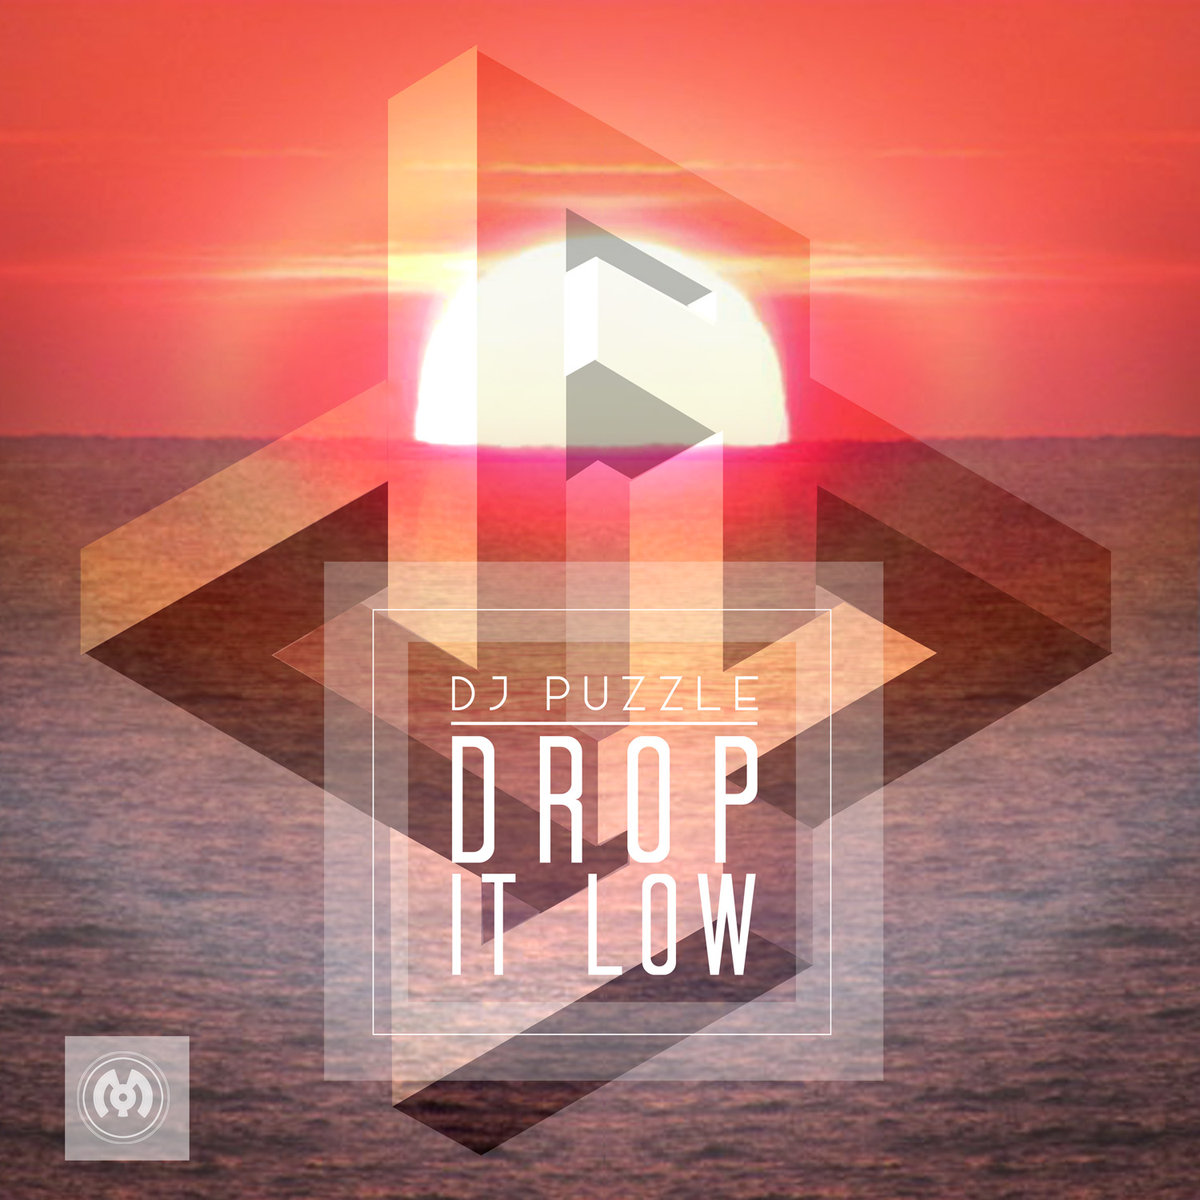 DJ Puzzle - Drop It Low @ 'Drop It Low' album (electronic, dubstep)